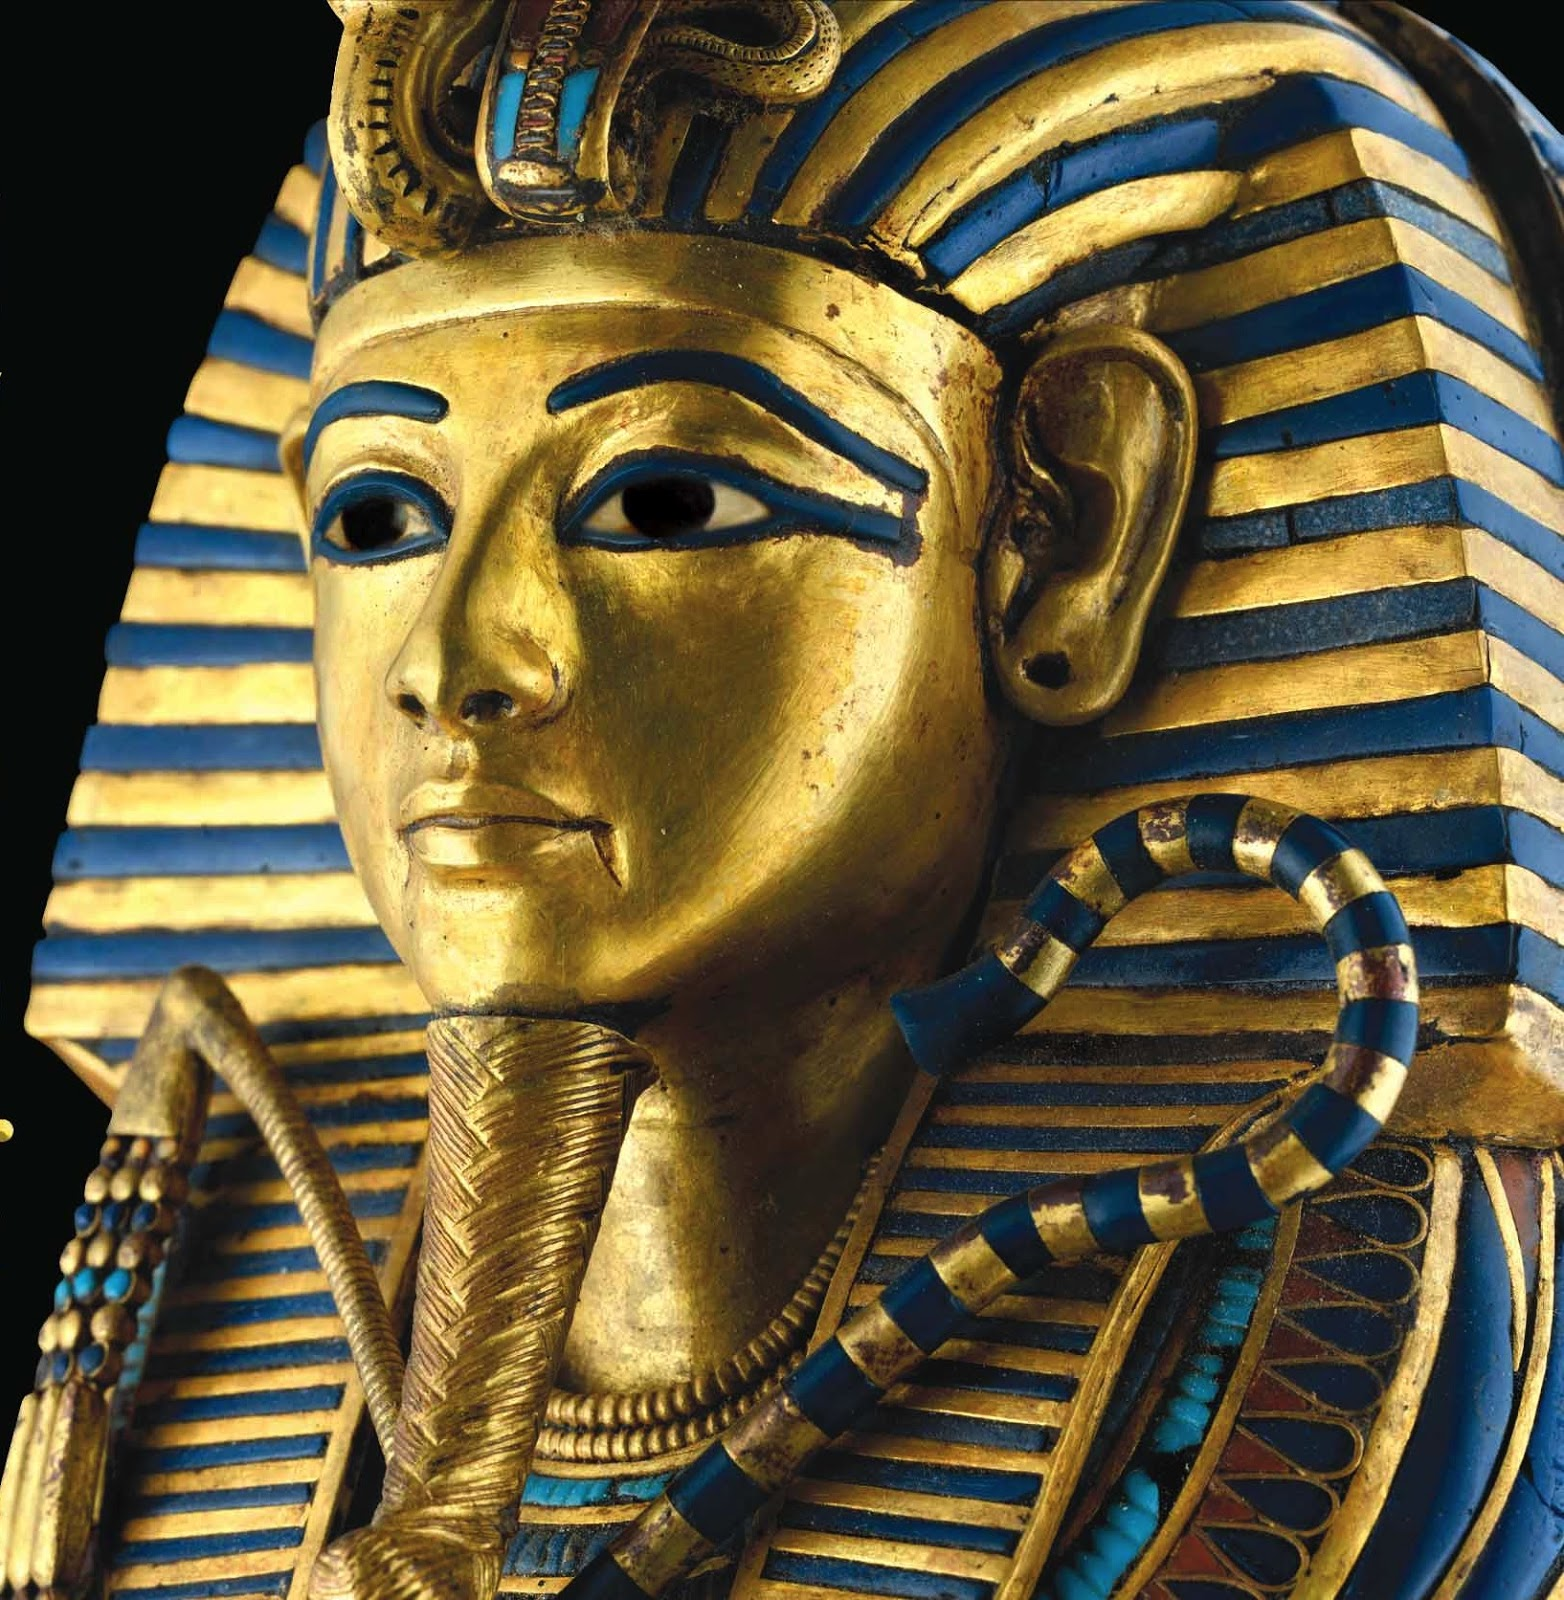 """a look at the life of king tutankhamen the mysterious pharaoh of egypt An egyptologist illuminates the life, reign and death of king tut  since the  discovery of his richly furnished tomb in 1922, tutankhamen has ascended to an  afterlife no pharaoh in ancient  in """"tutankhamen: the search for an egyptian  king,"""" tyldesley has  even tut's death remains shrouded in mystery."""